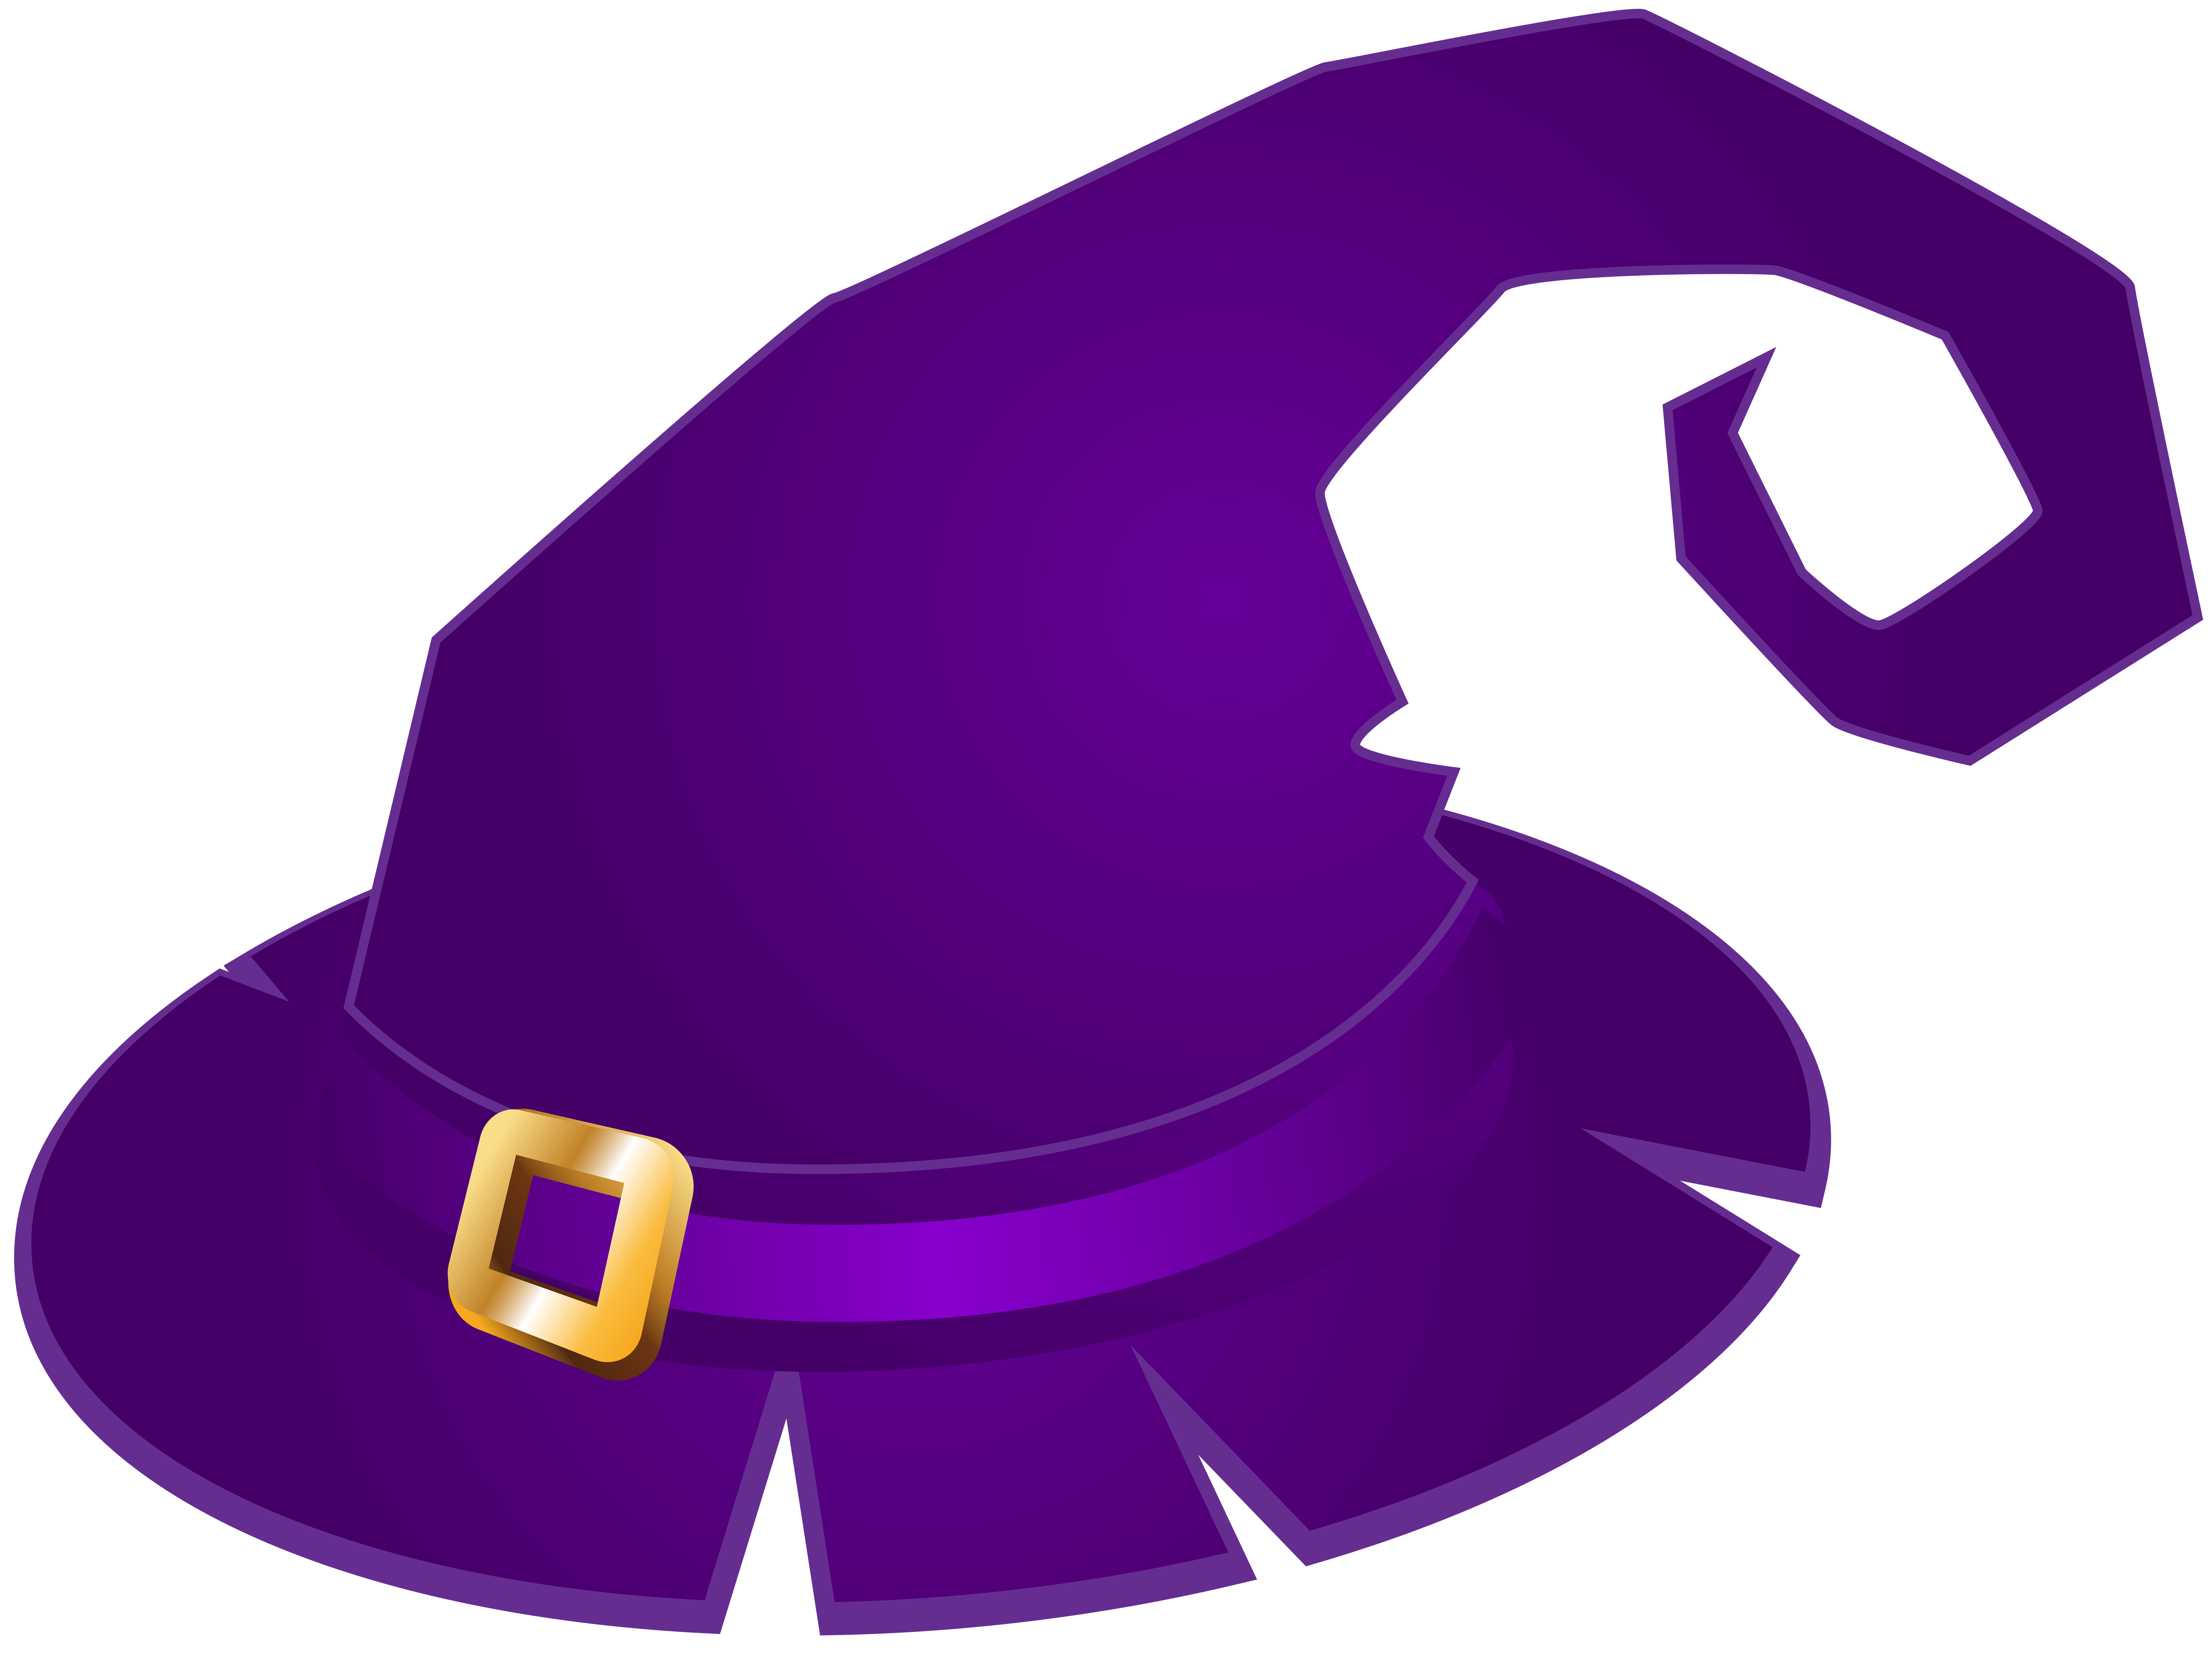 8000x5981 Purple Witch Hat Transparent Png Clip Art Imageu200b Gallery